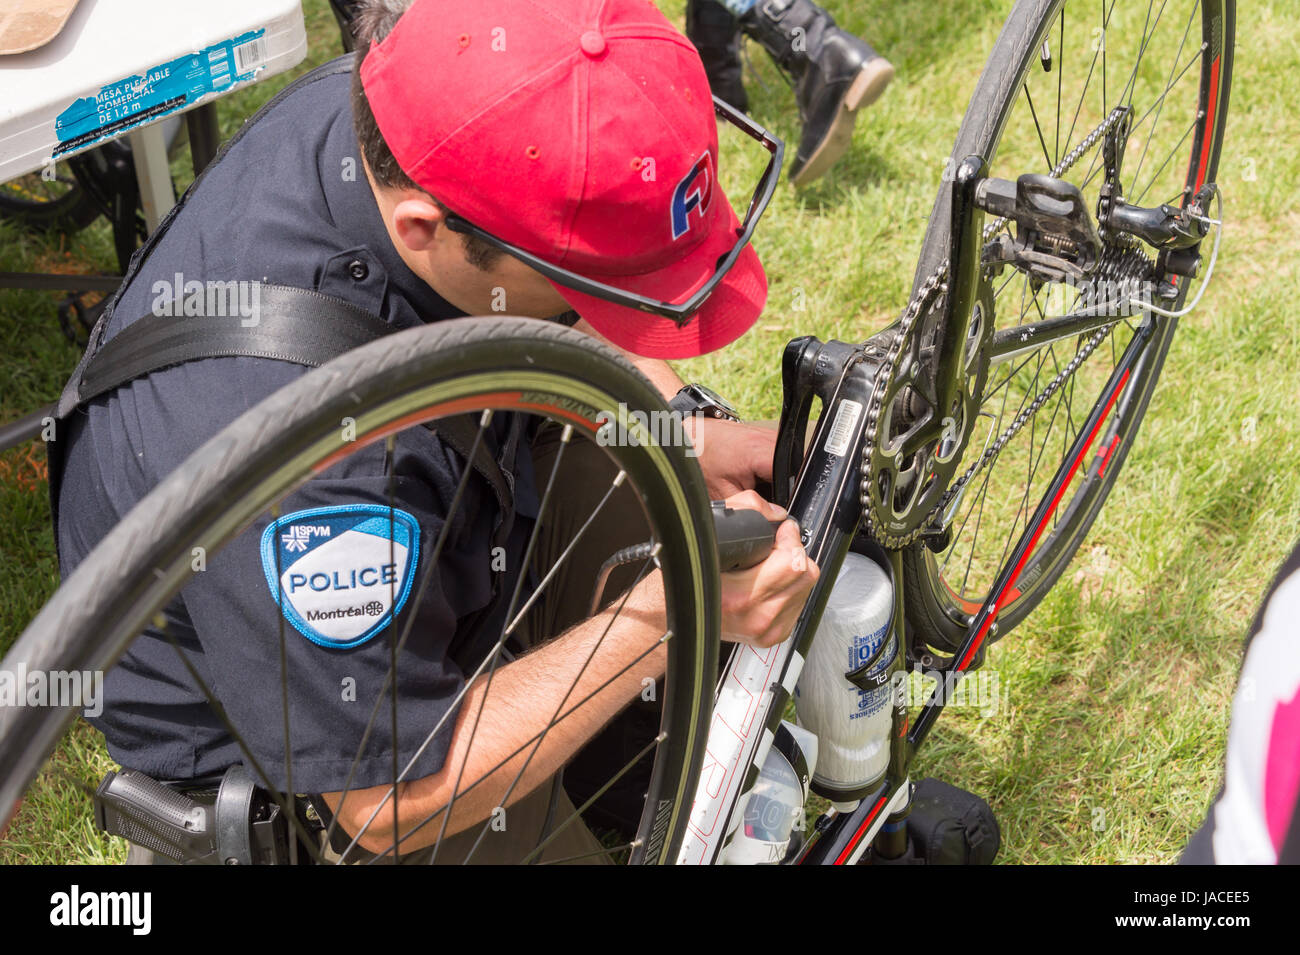 Montreal, Canada - 4 June 2017: A police officer is engraving a bike with an ID number at Park Jeanne to reduce - Stock Image